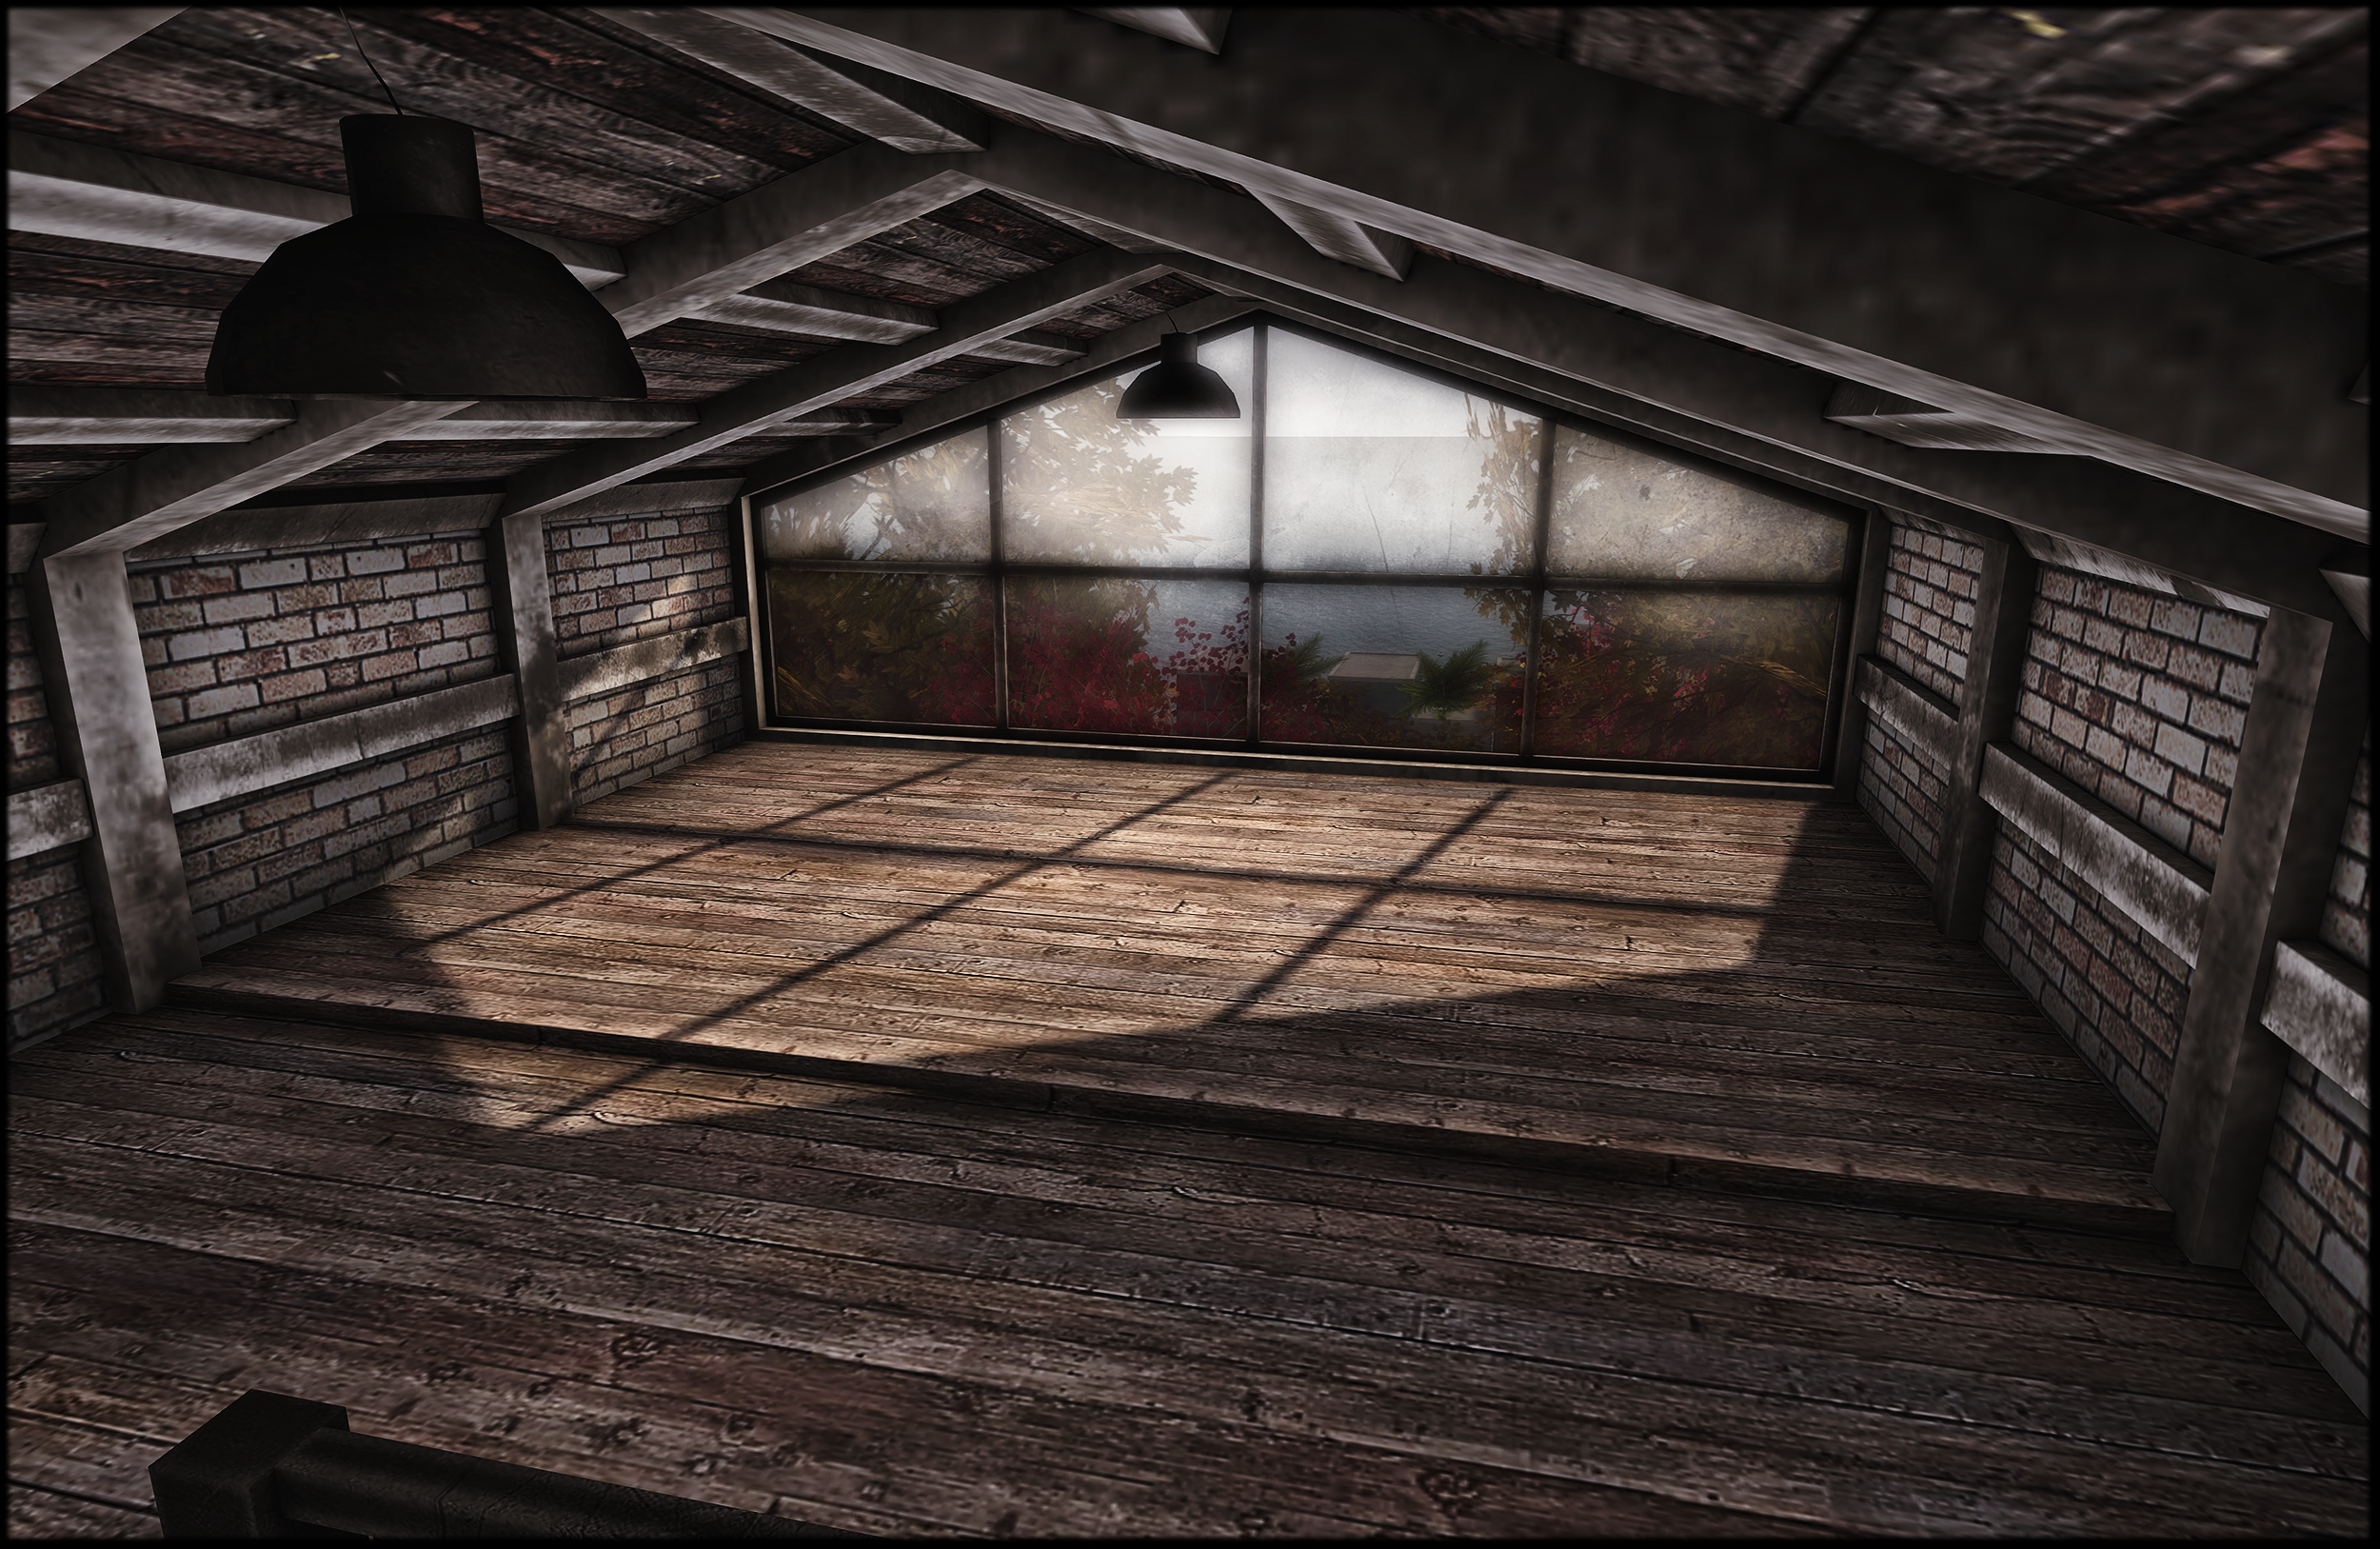 Workshop Attic Skybox by Epia